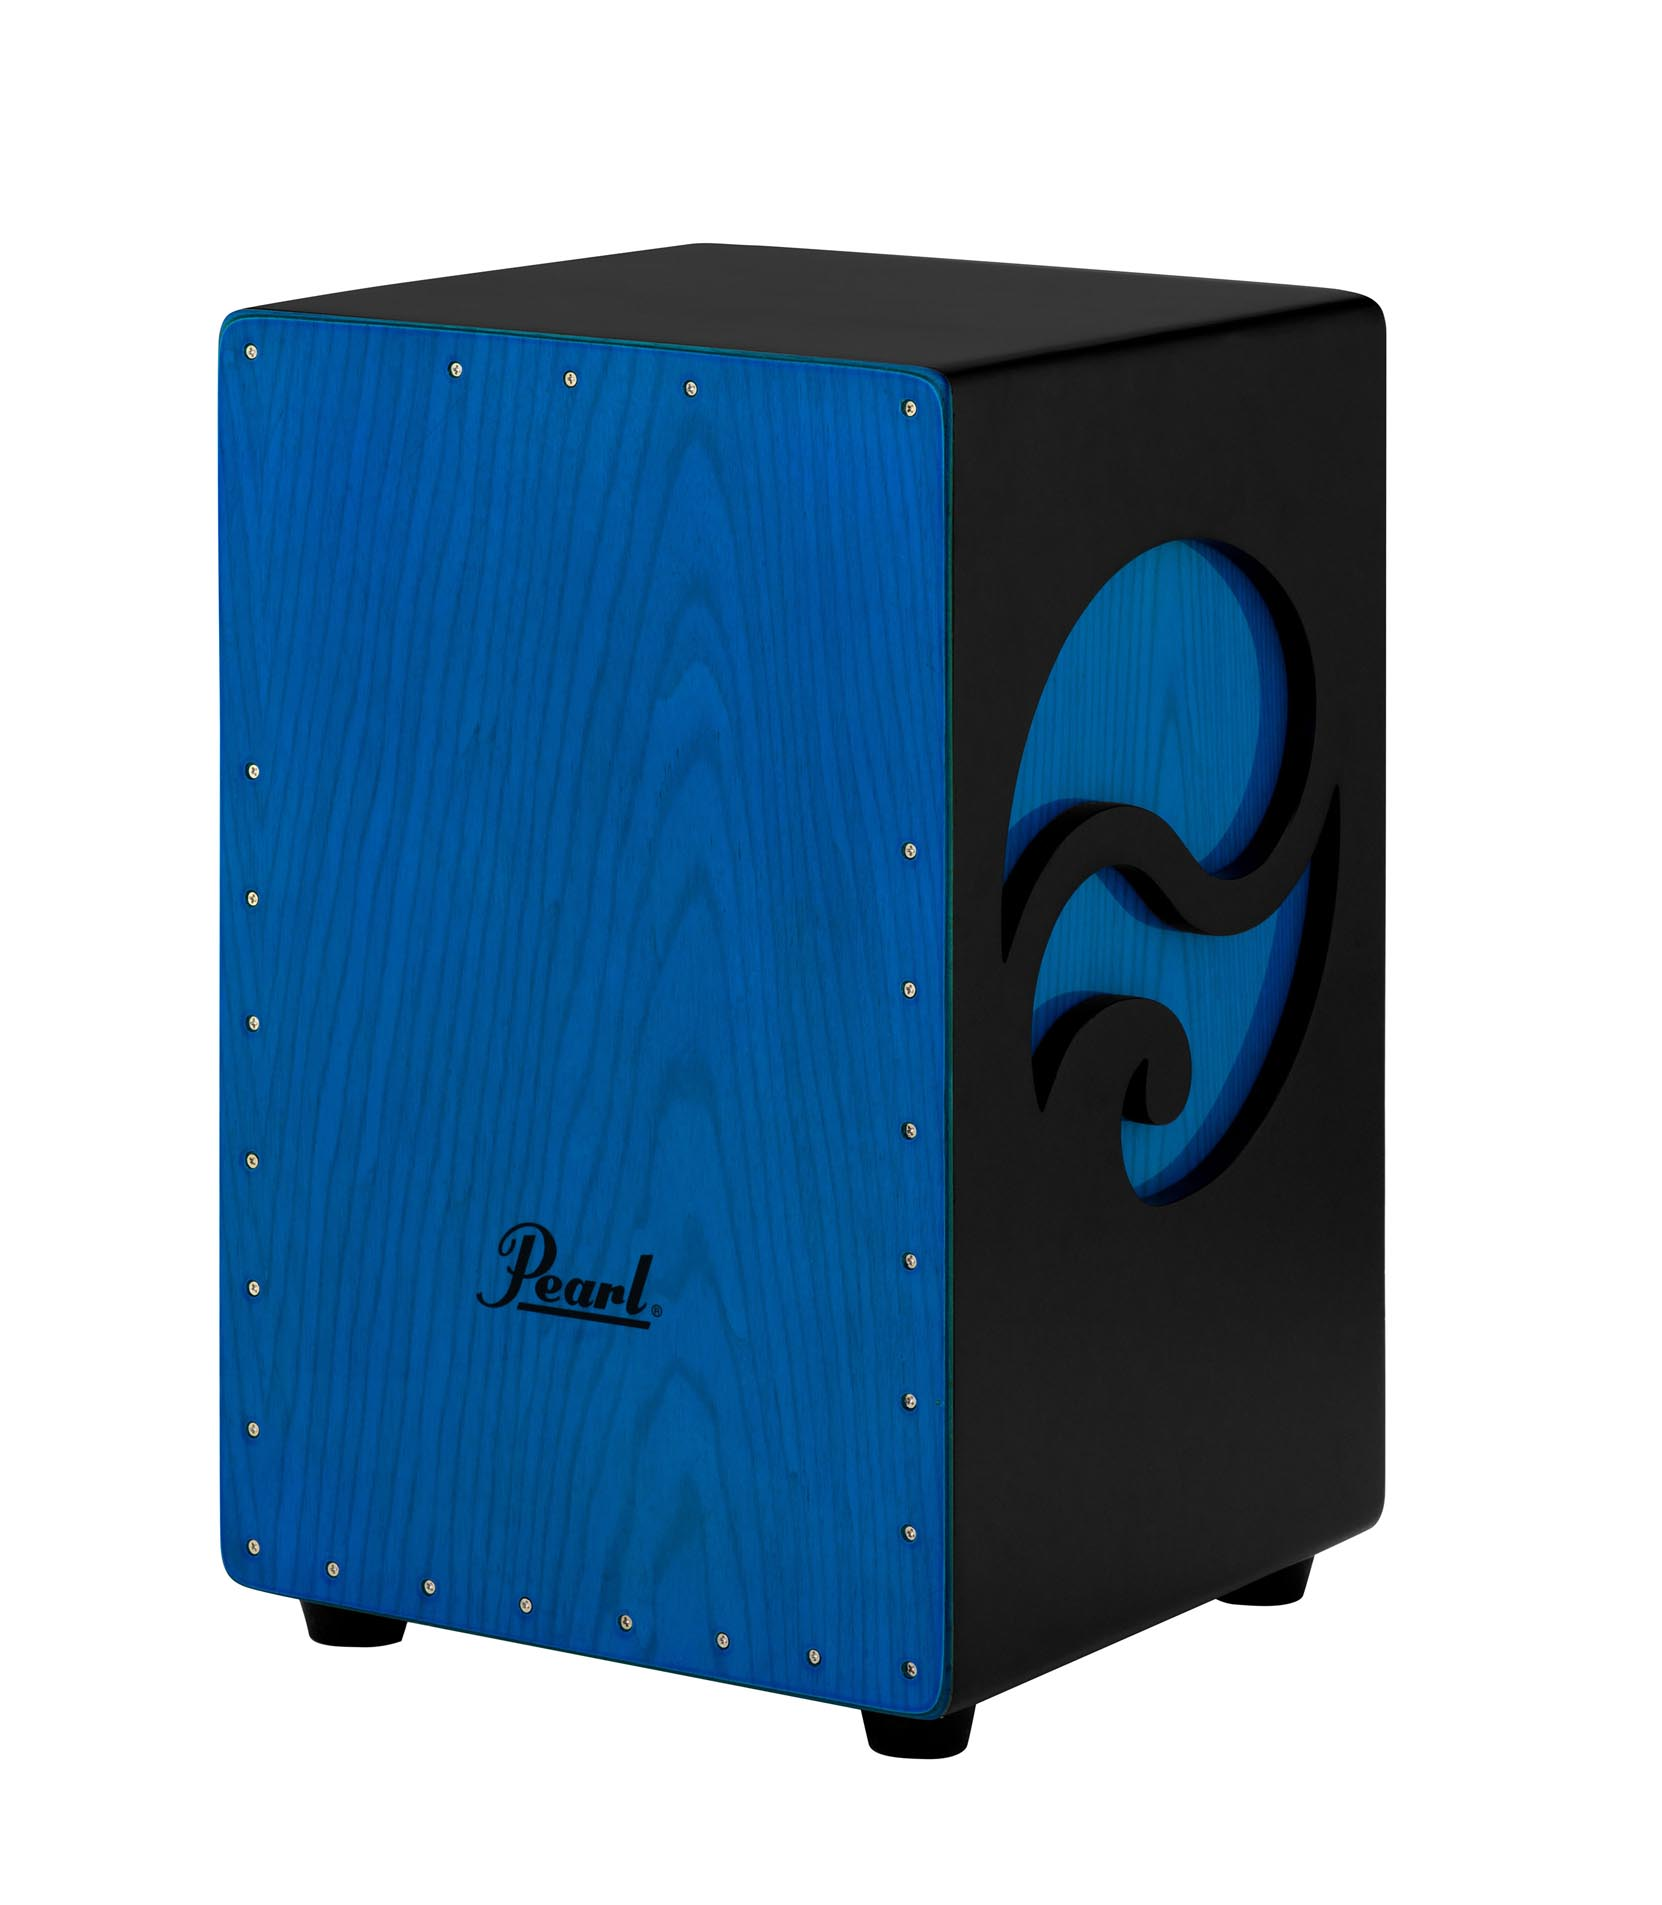 Pearl - PBC 53D 539 3 D Cajon Wave DRSign - Melody House Musical Instruments